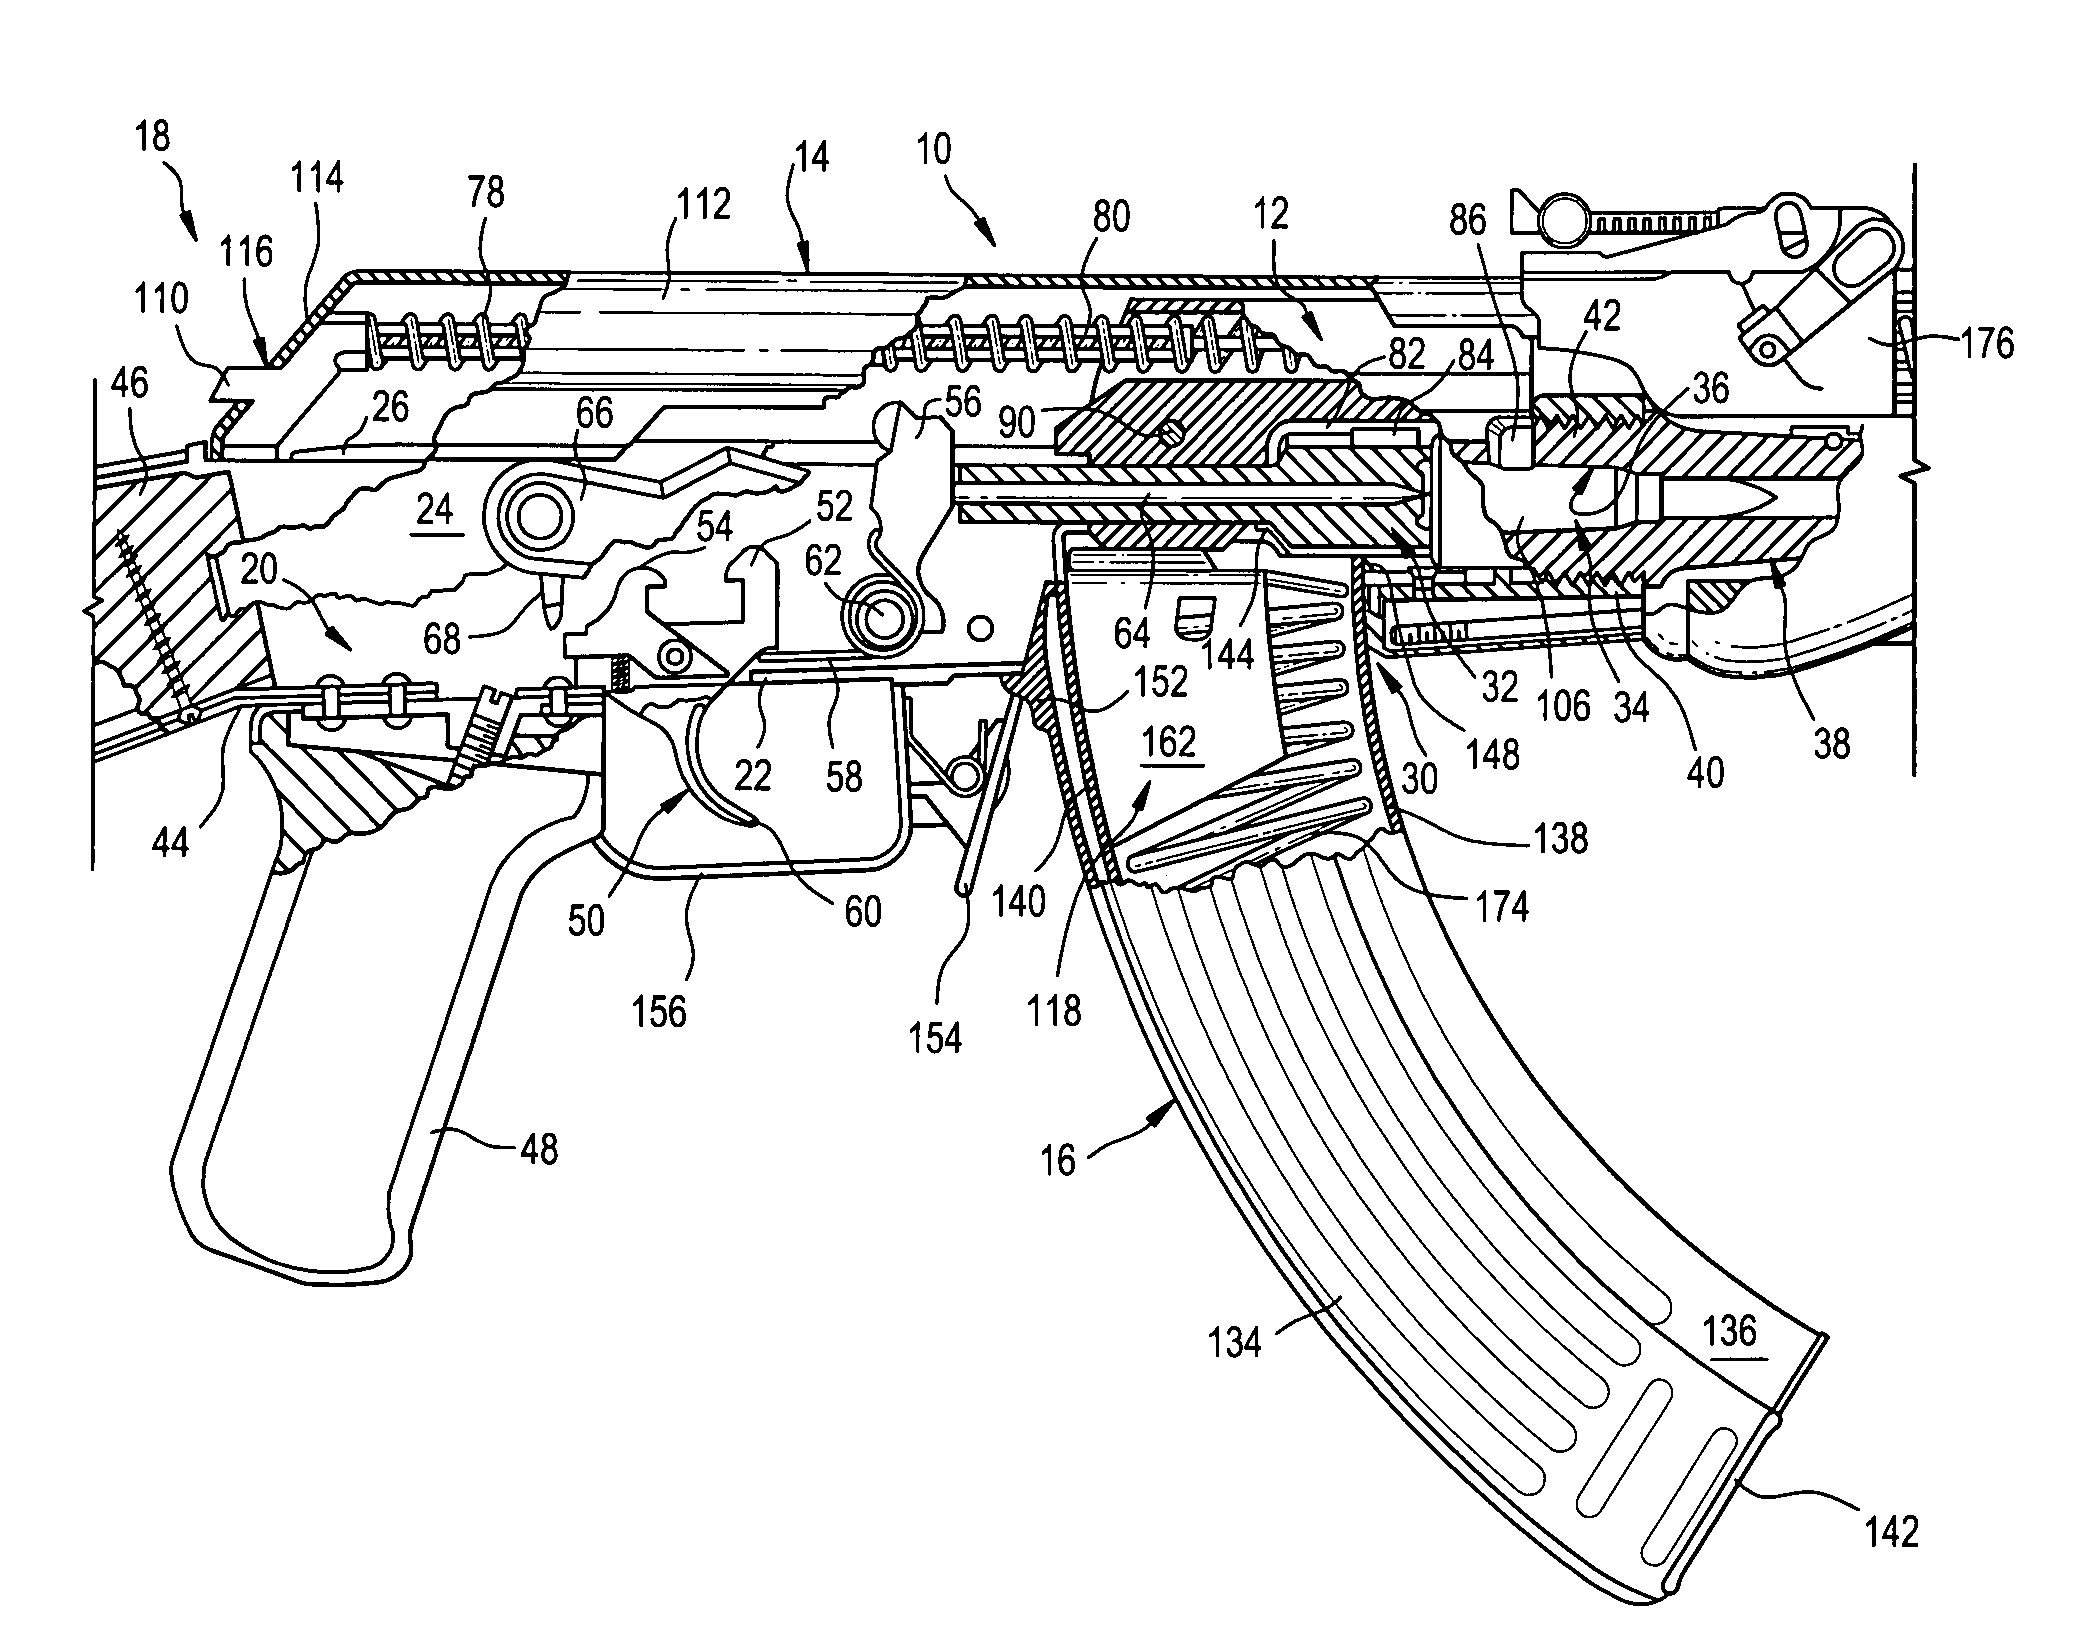 Ak 47 Exploded View Diagram Sketch Coloring Page